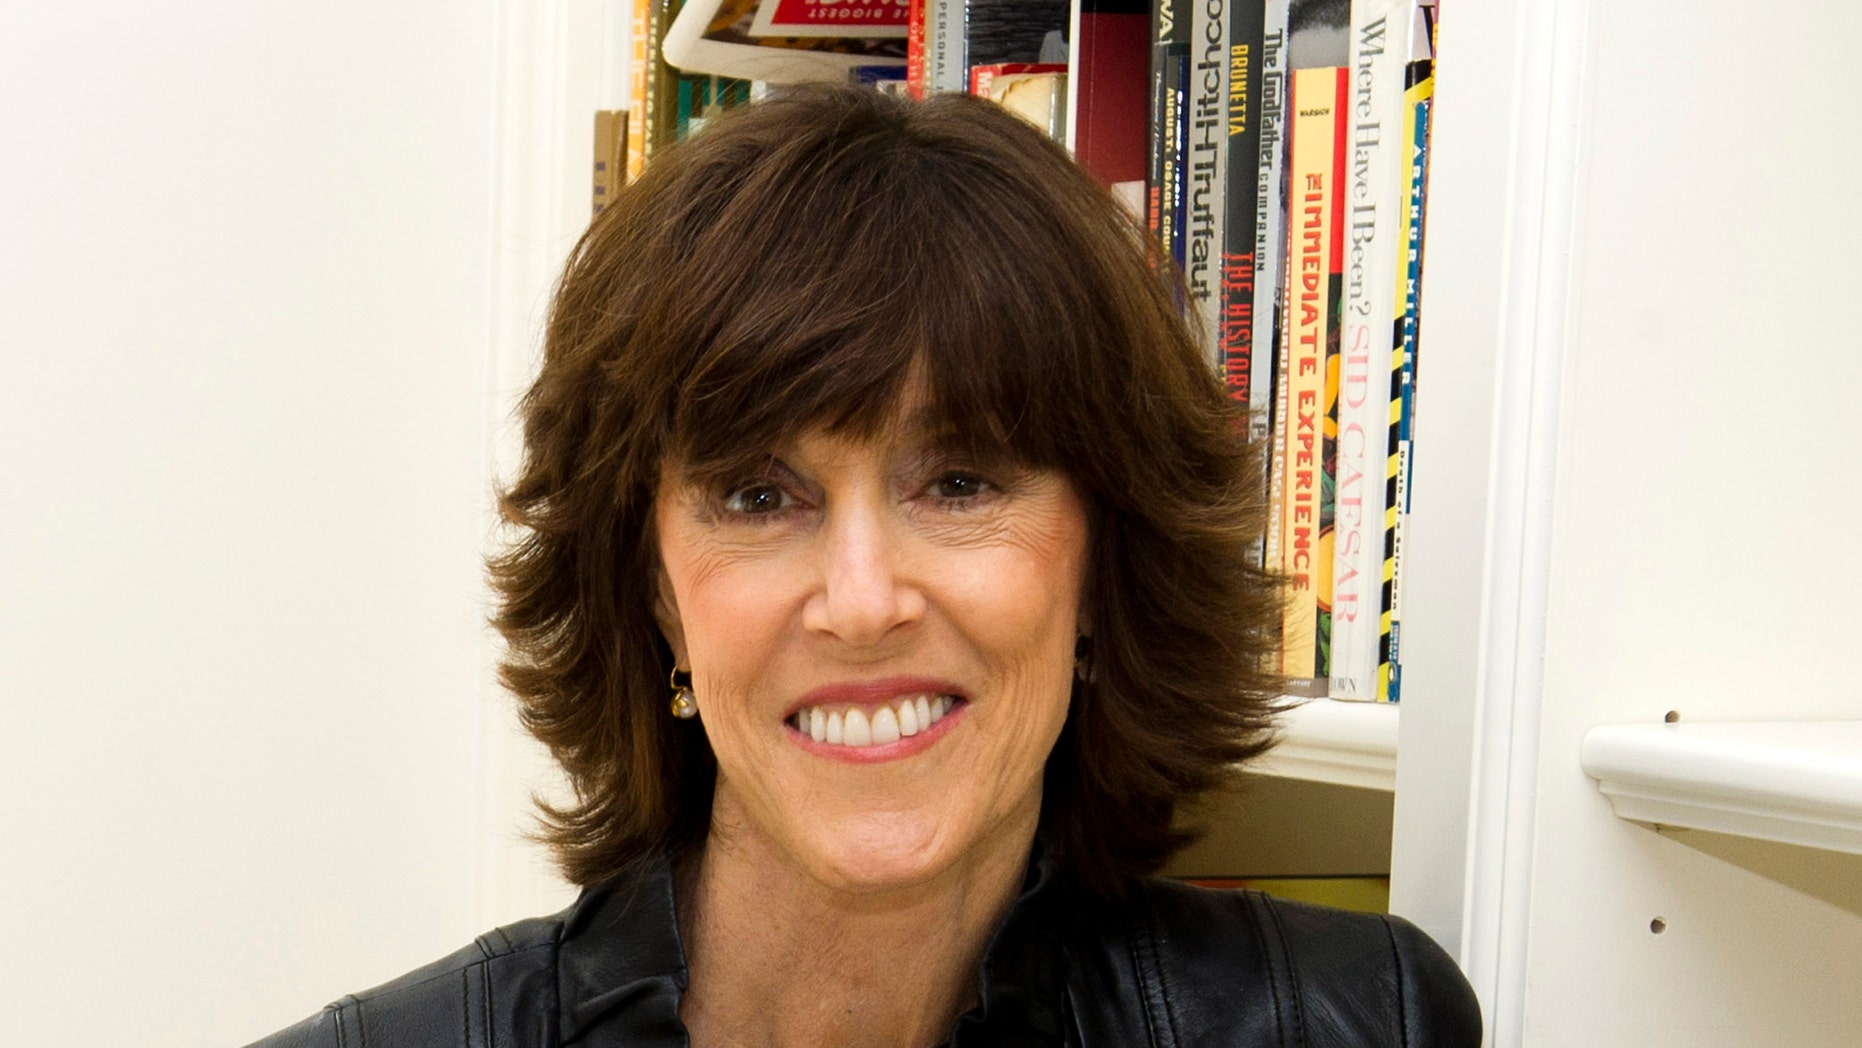 FILE - This Nov. 3, 2010 file photo shows author, screenwriter and director Nora Ephron at her home in New York.  Publisher Alfred A. Knopf confirmed Tuesday, June 26, 2012, that author and filmmaker Nora Ephron died Tuesday of leukemia in New York. She was 71. (AP Photo/Charles Sykes, file)